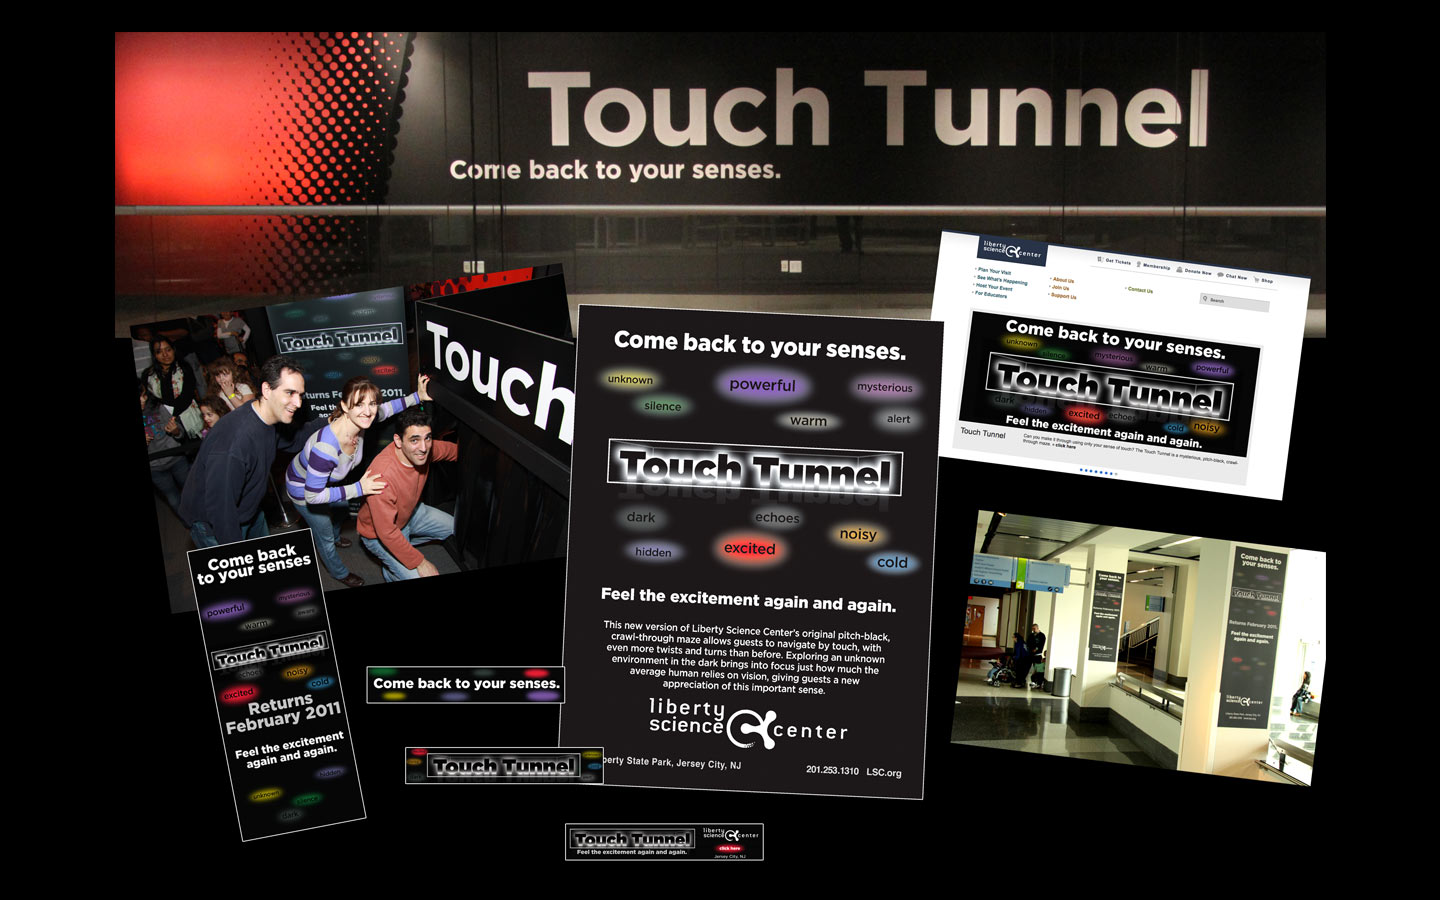 <p>Rebranding of the Touch Tunnel- full campaign, signage, ads, etc.</p>